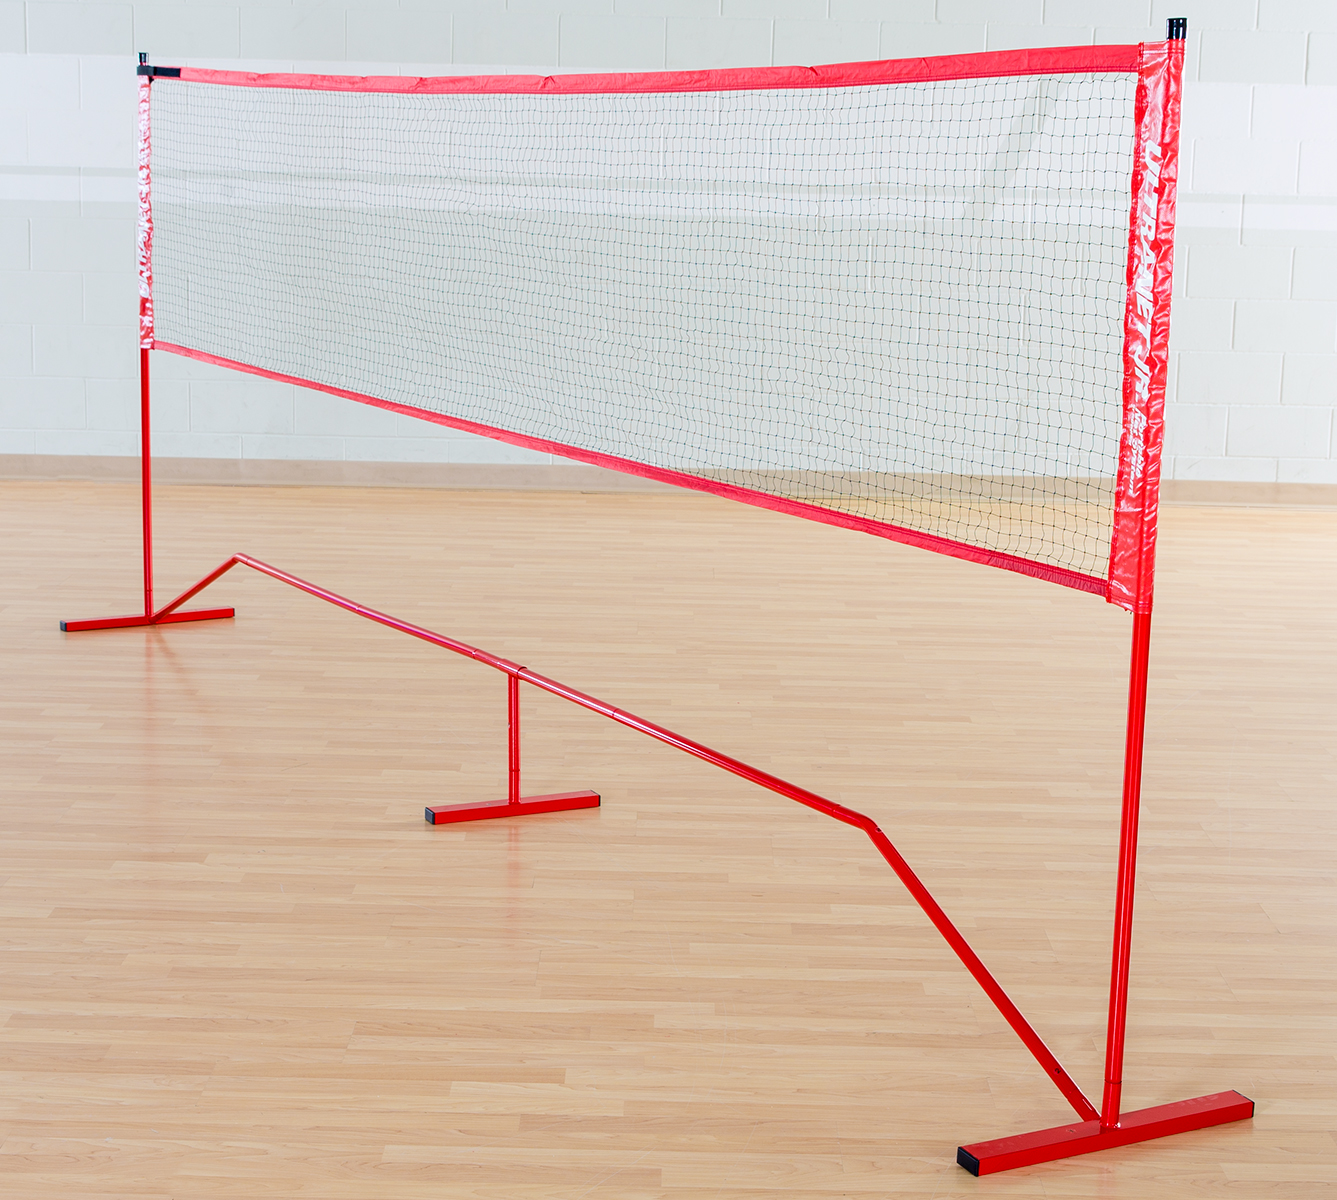 Portable badminton net in gym